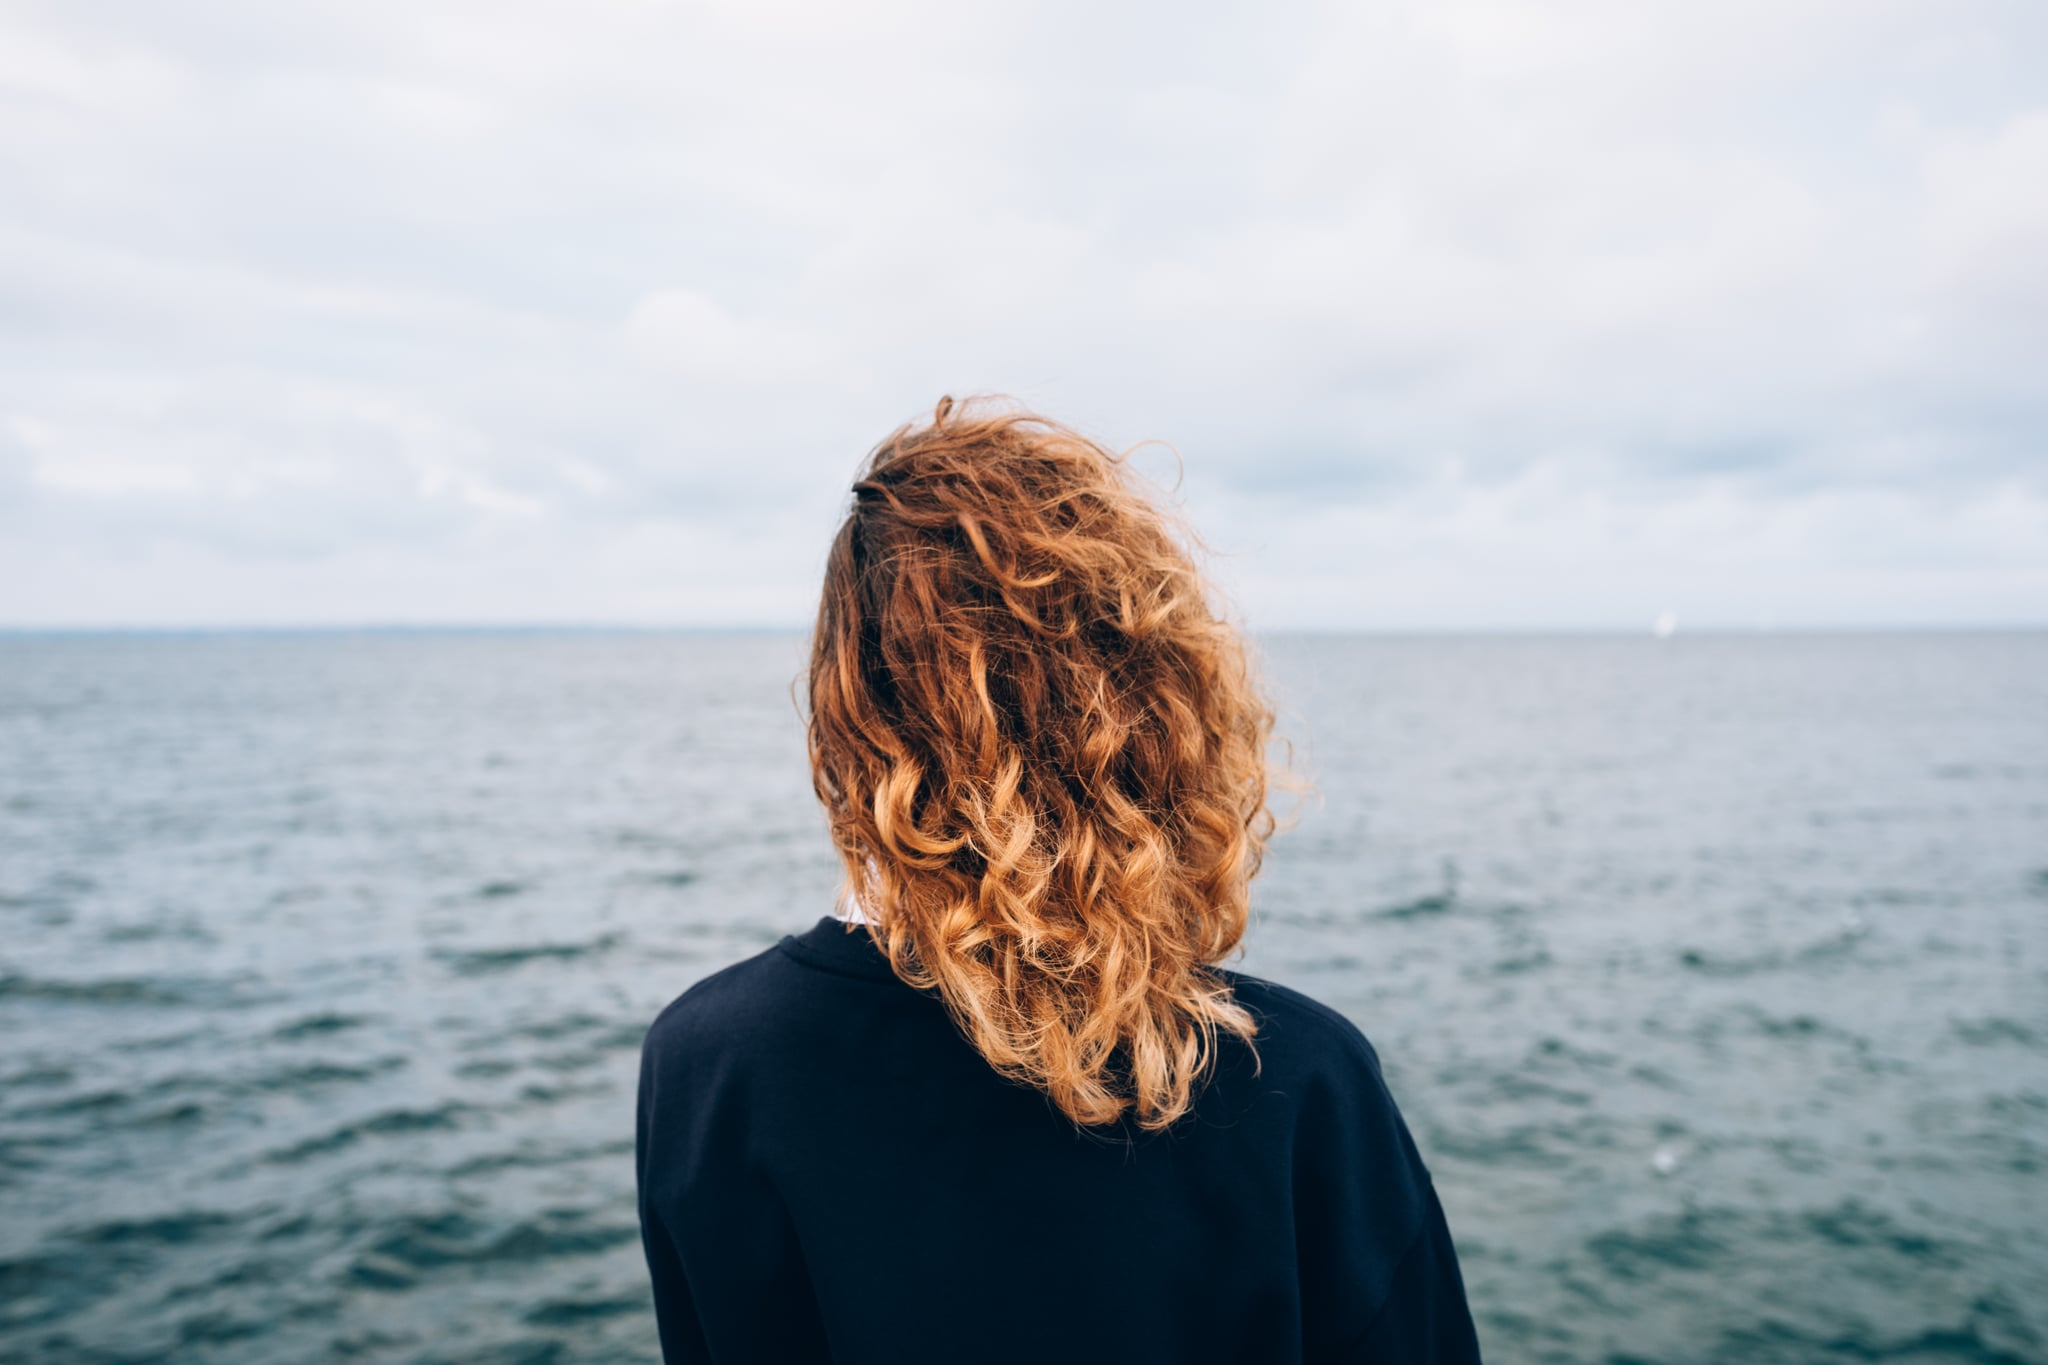 Female with red curly hair outdoors standing alone thinking near blue water. Rear view of young woman looking at sea.